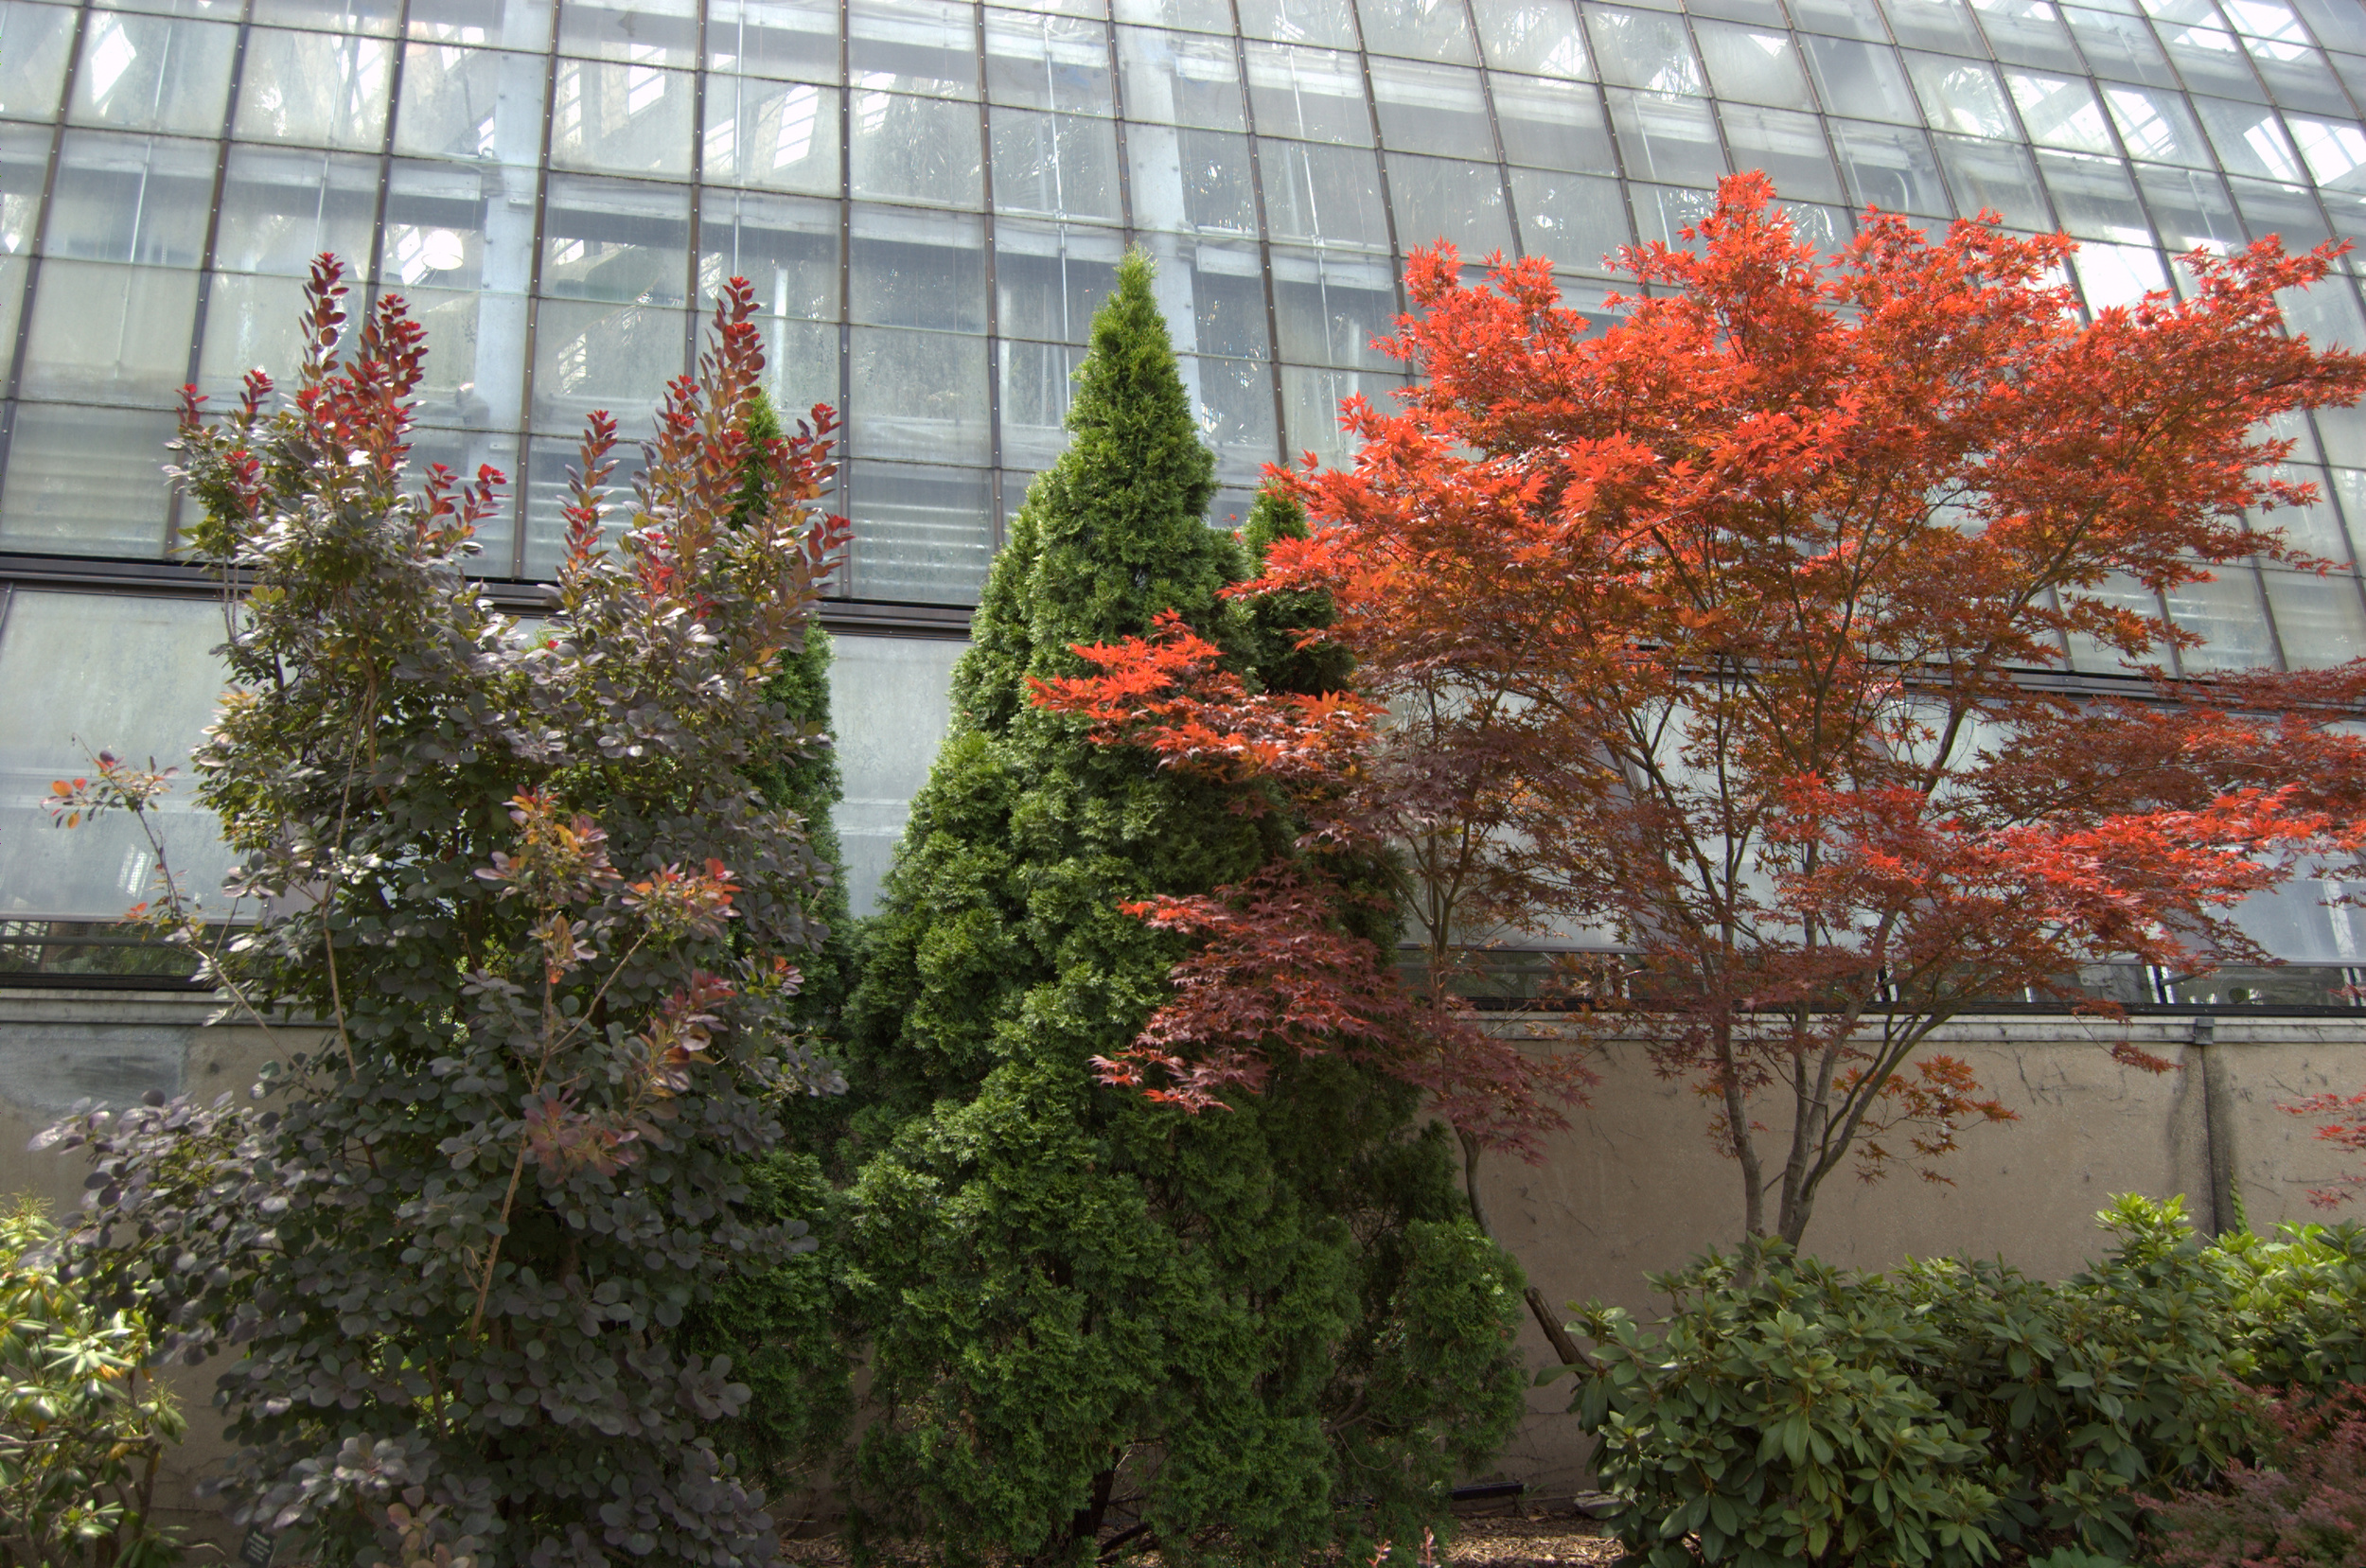 Smokebush and Japanese Maple